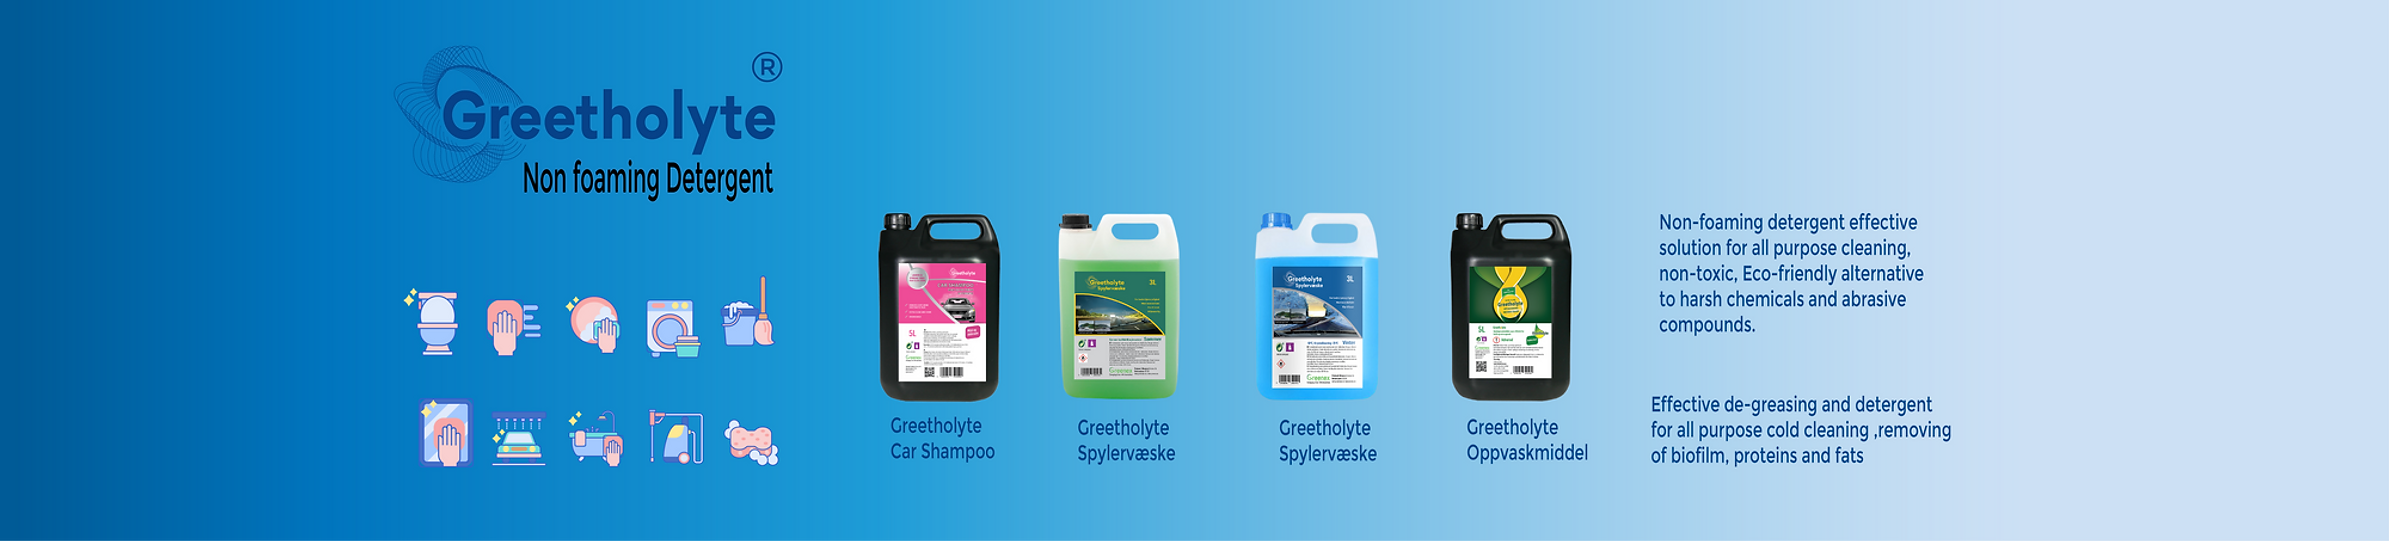 Products Greenolyte-04.png